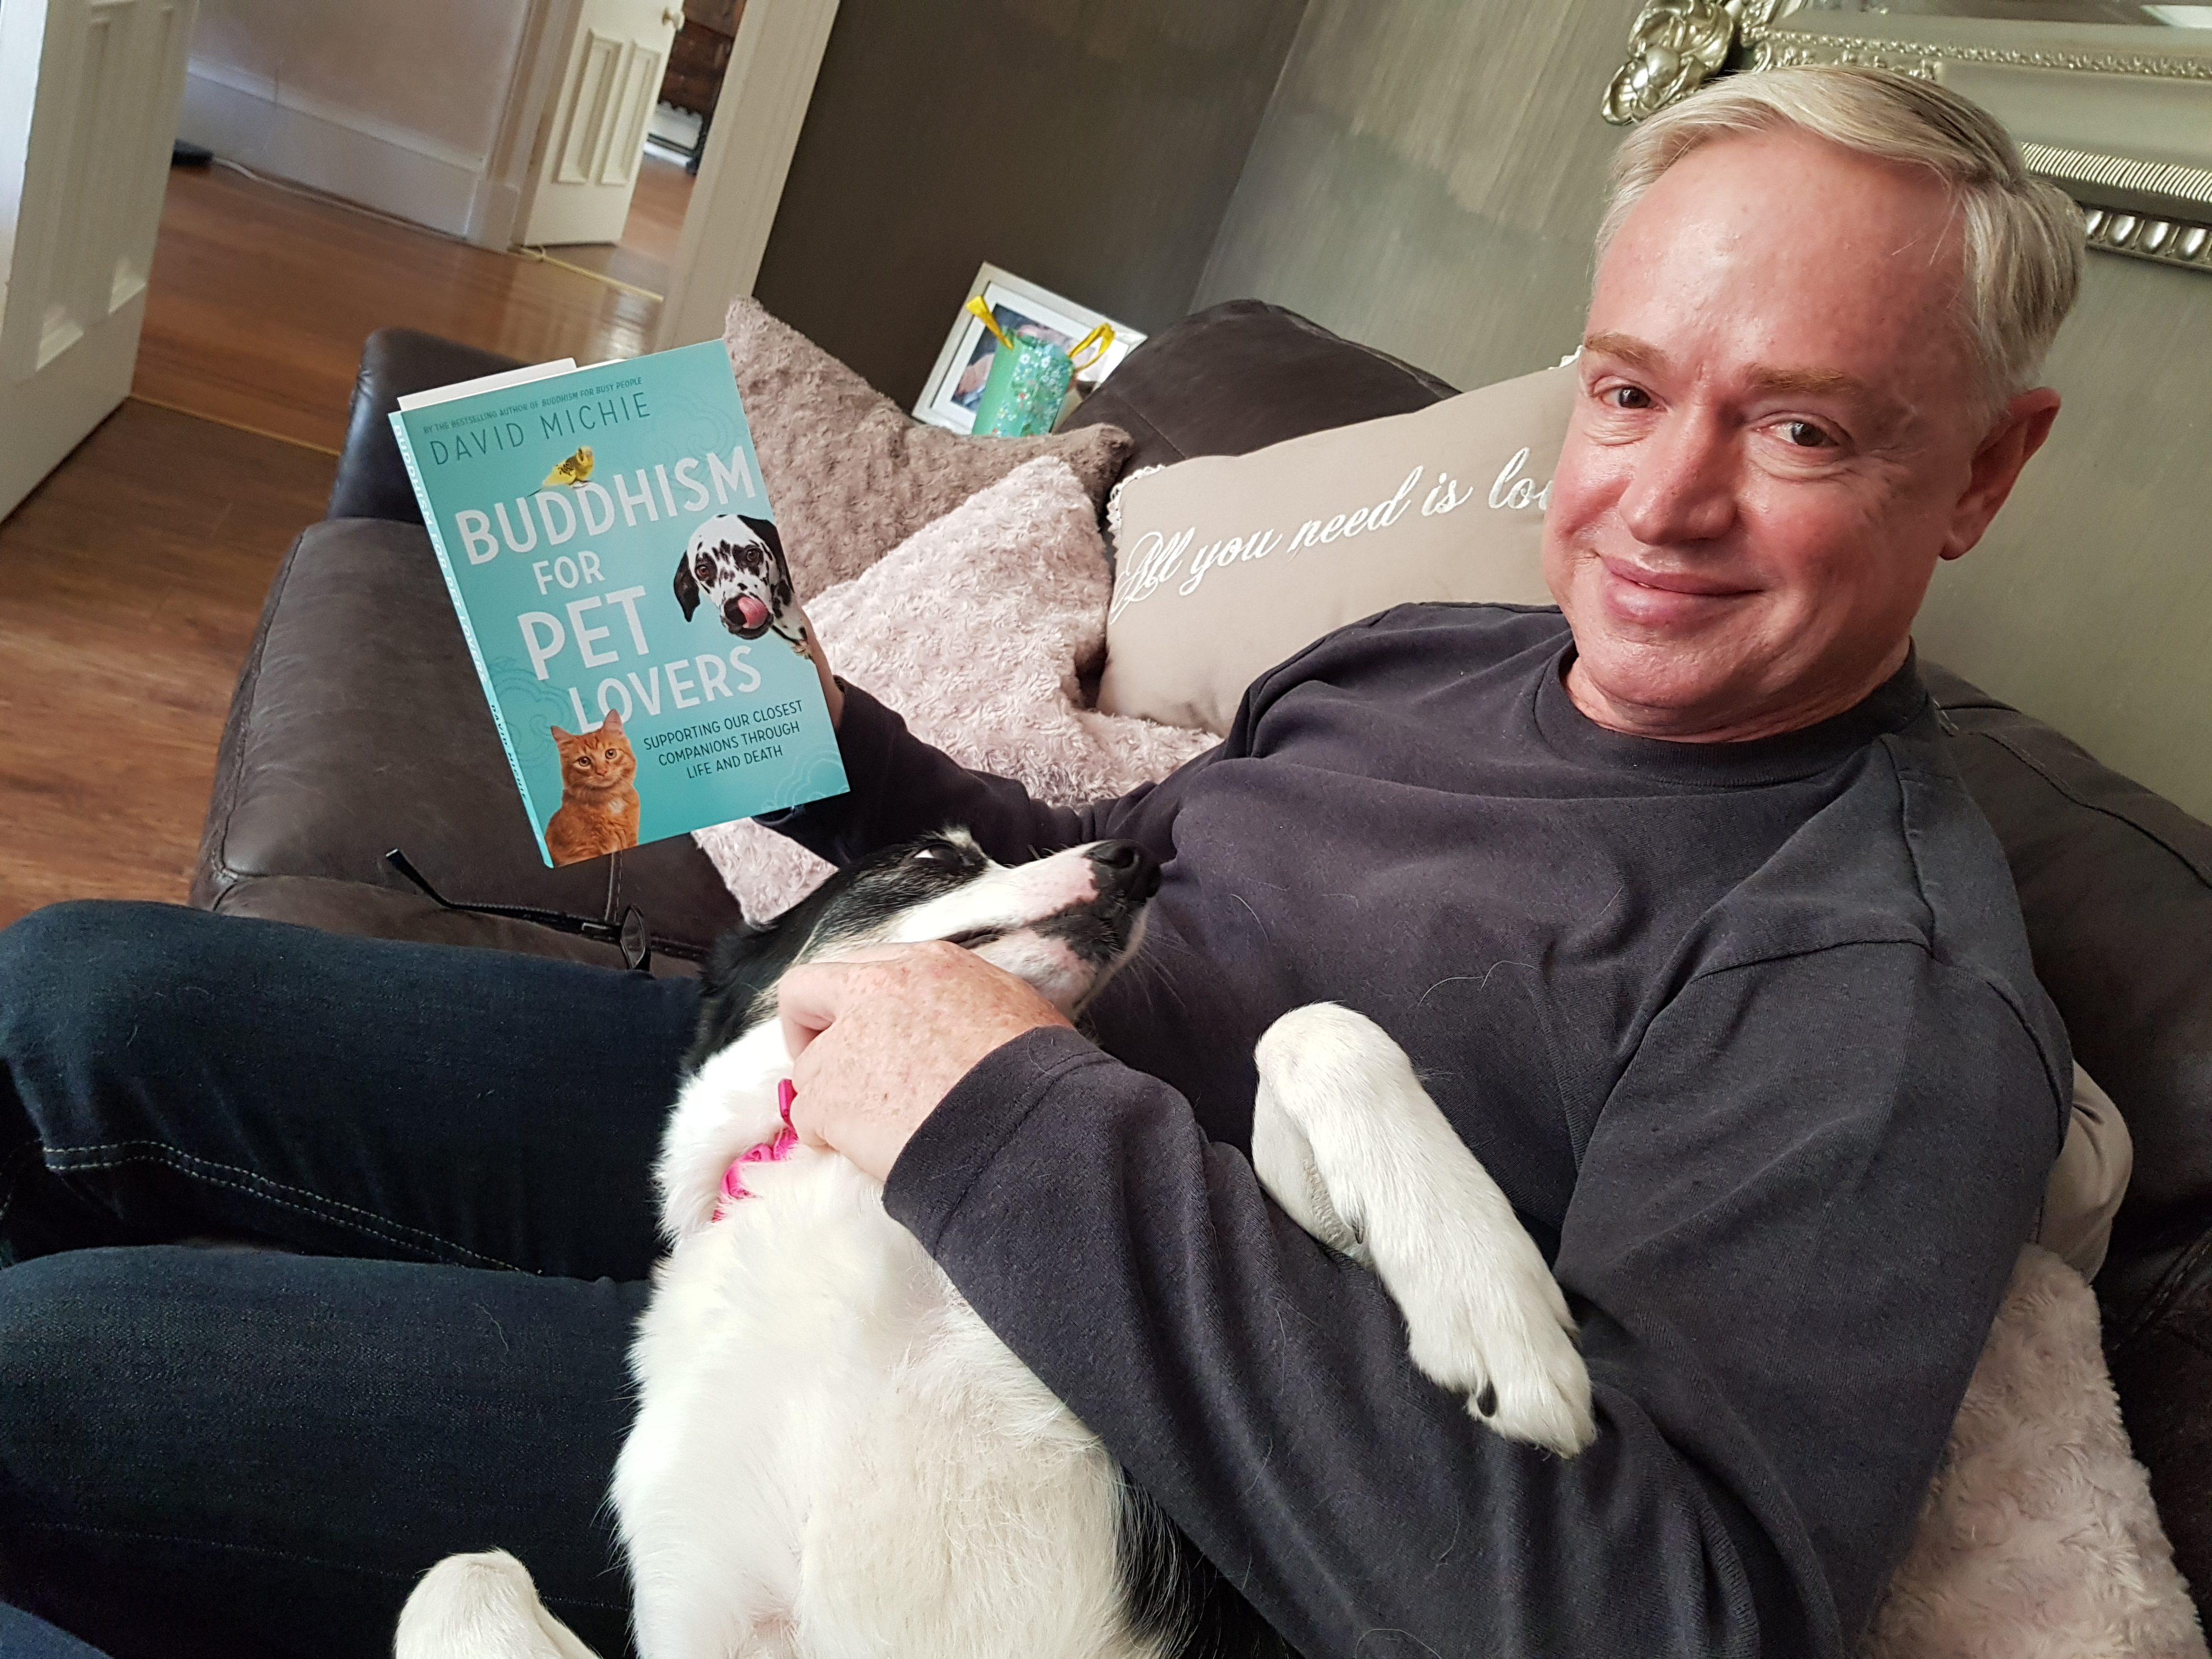 Buddhism for Pet Lovers – David Michie